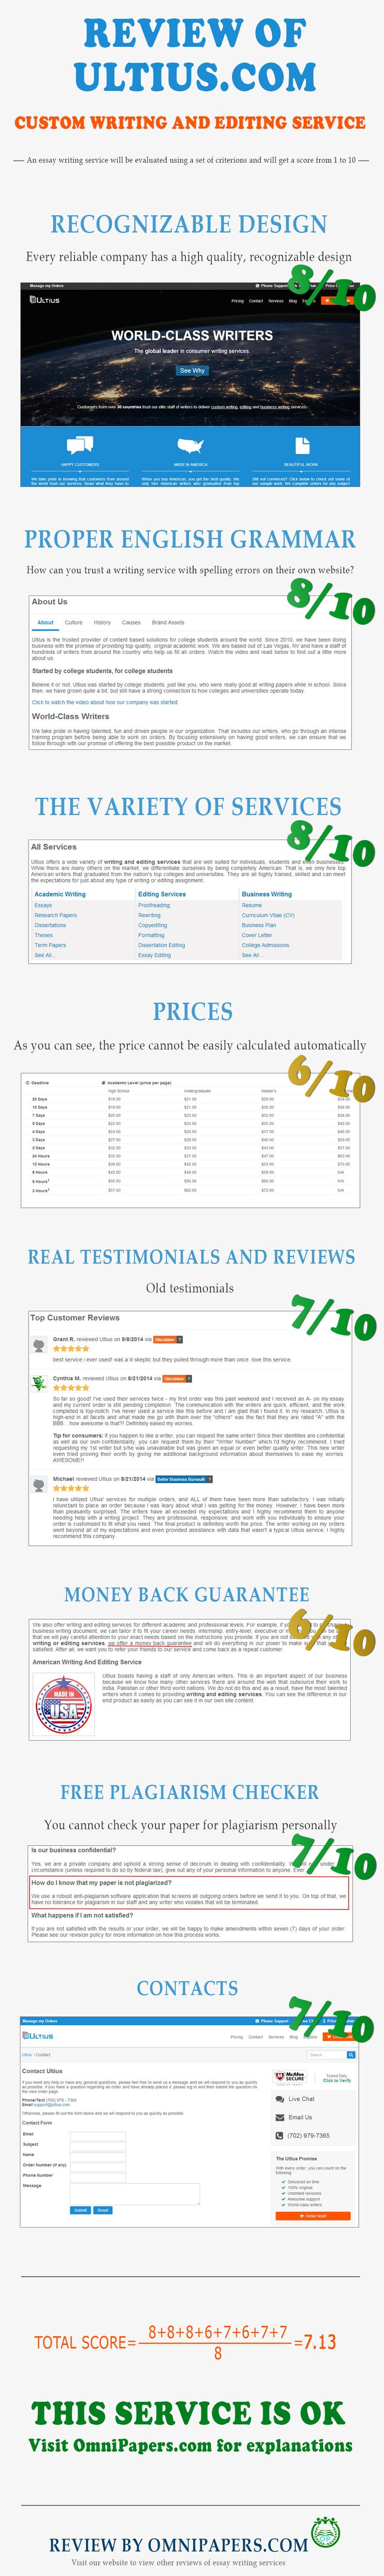 My New Review Of Utiuls Service   Custom Writing And Editing Service. Visit  Http: